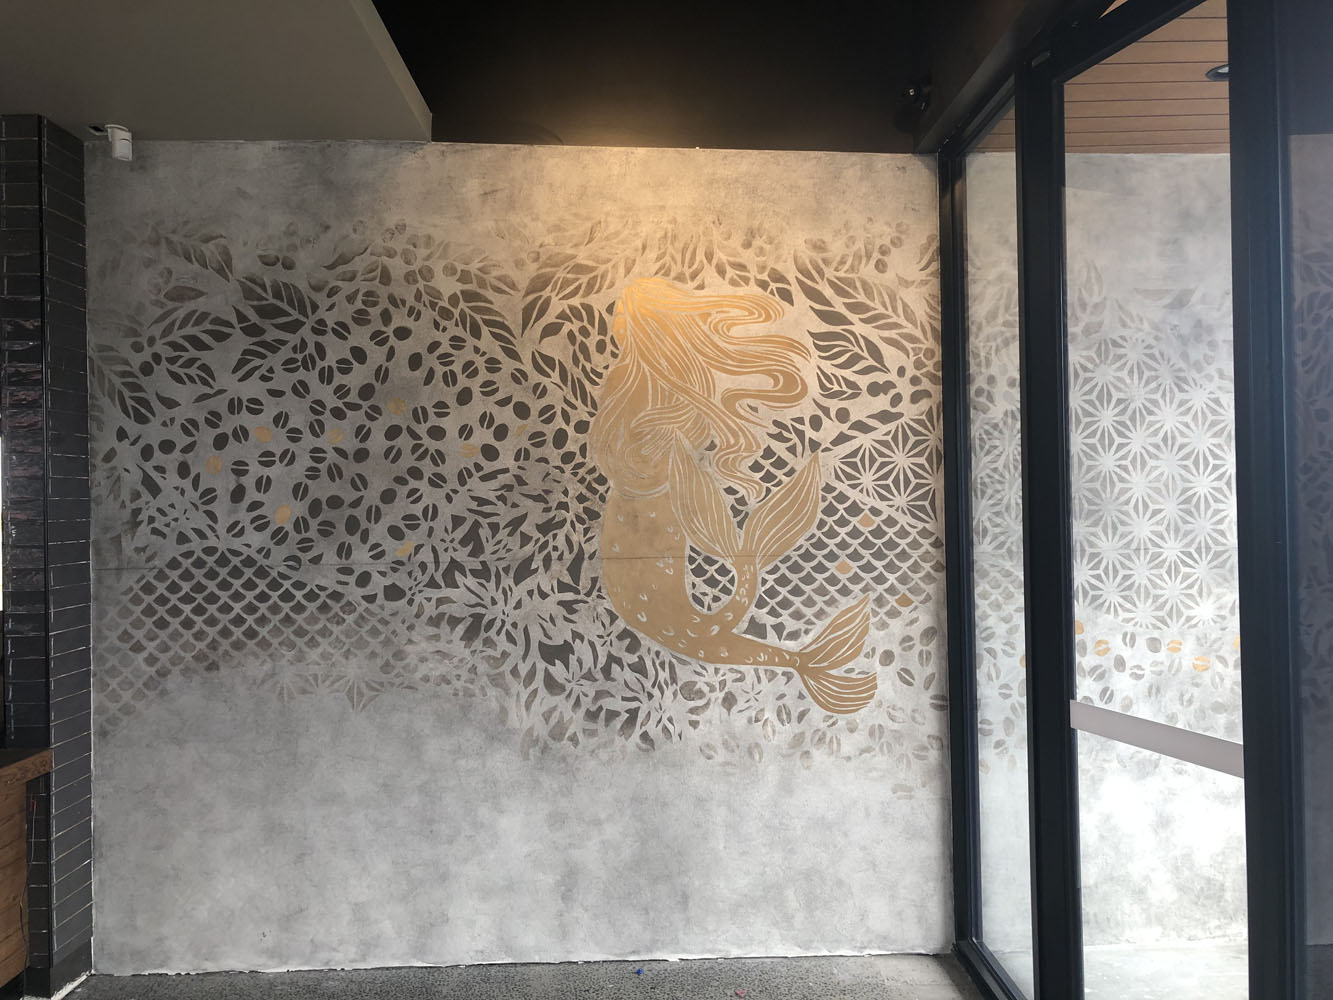 the-art-of-wall-starbucks-coolaroo-siren-wall-art-mural-1